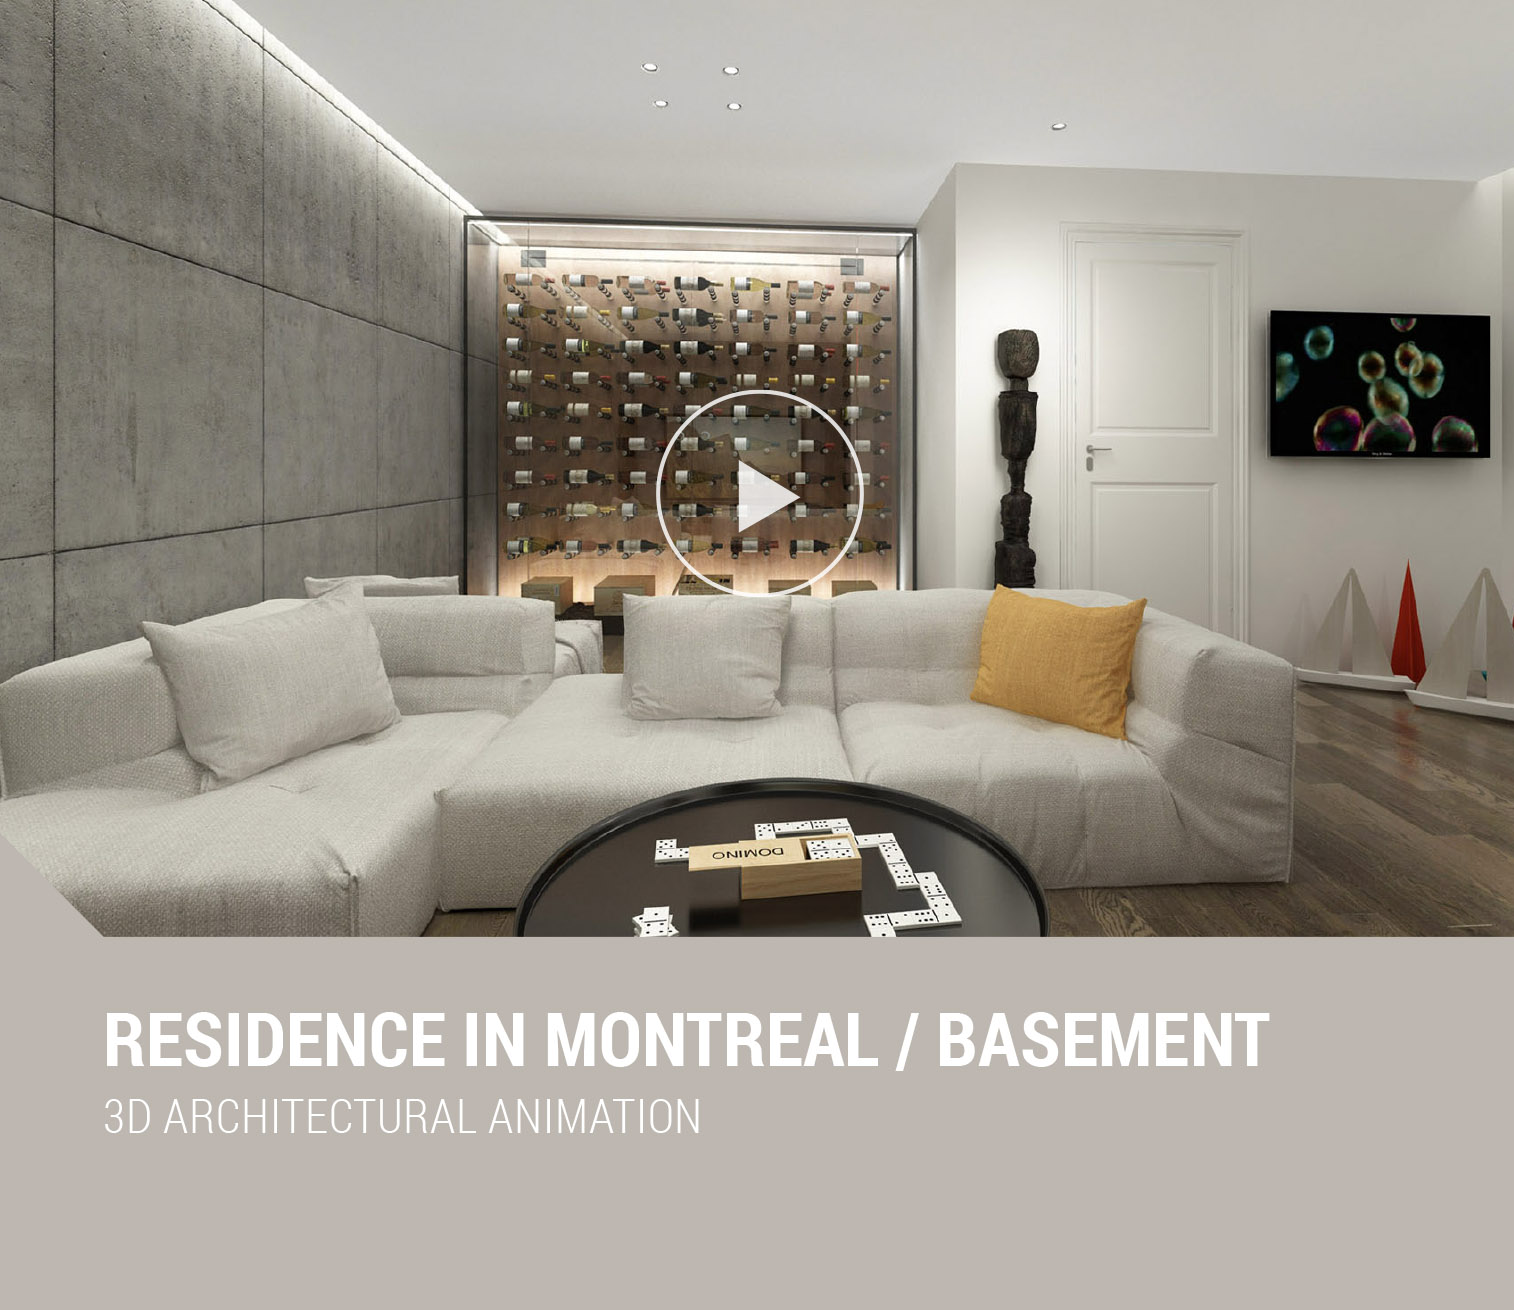 Schema Dimitra Chrona designer, creative director, architectural, 3D visualization, 3D Rendering, branding websites, digital, graphic design, interior design, real estate, luxury property, staging, museum, virtual, art, brochures, exhibitions, logotype, logo, Canada Quebec Montreal Athens Greece schema design residence montreal basement video small.jpg